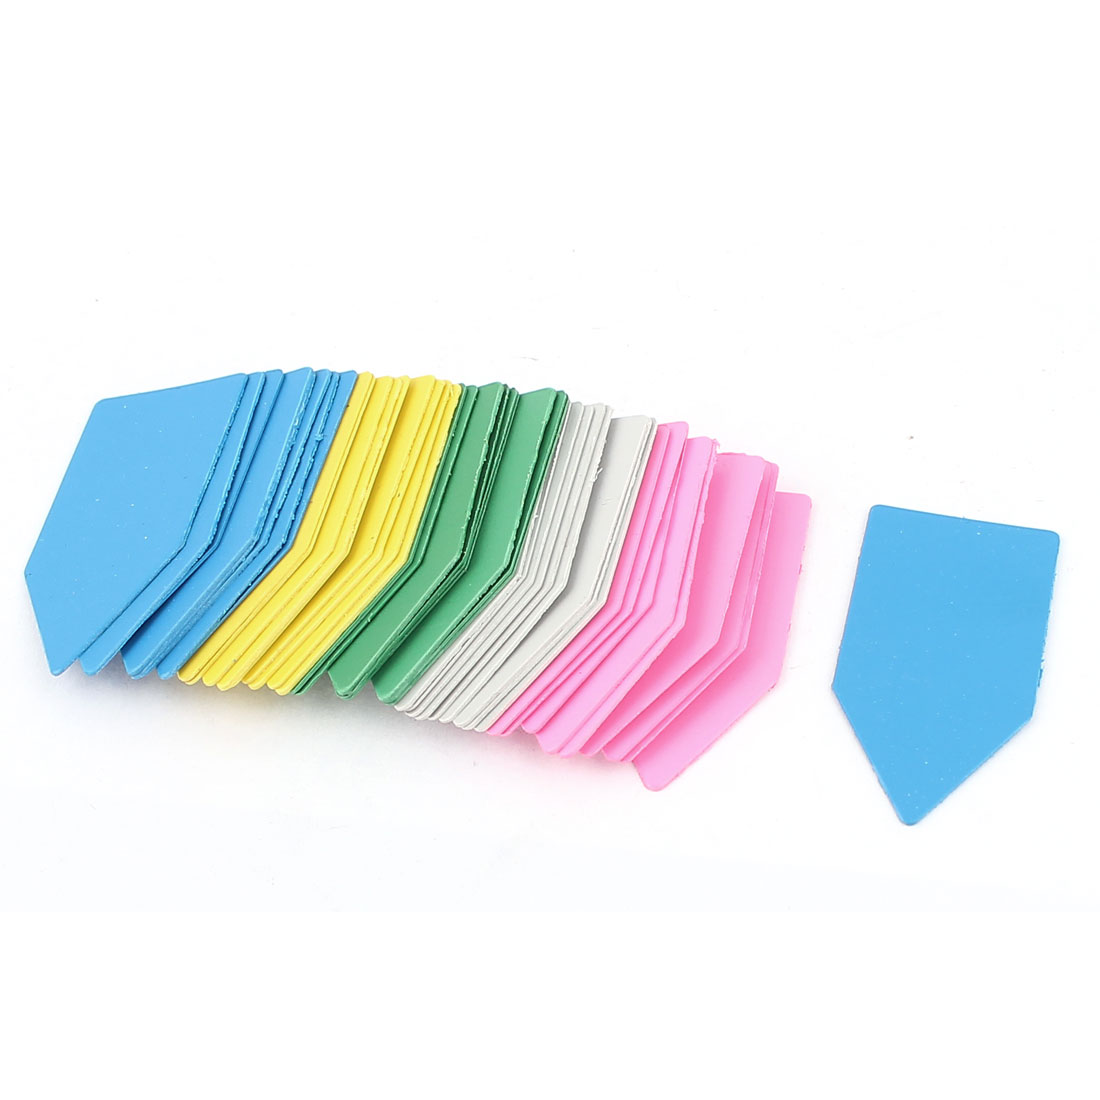 4cmx2cm Plastic Nursery Garden Plant Seed Tag Label Marker Stick Assorted Color 45Pcs